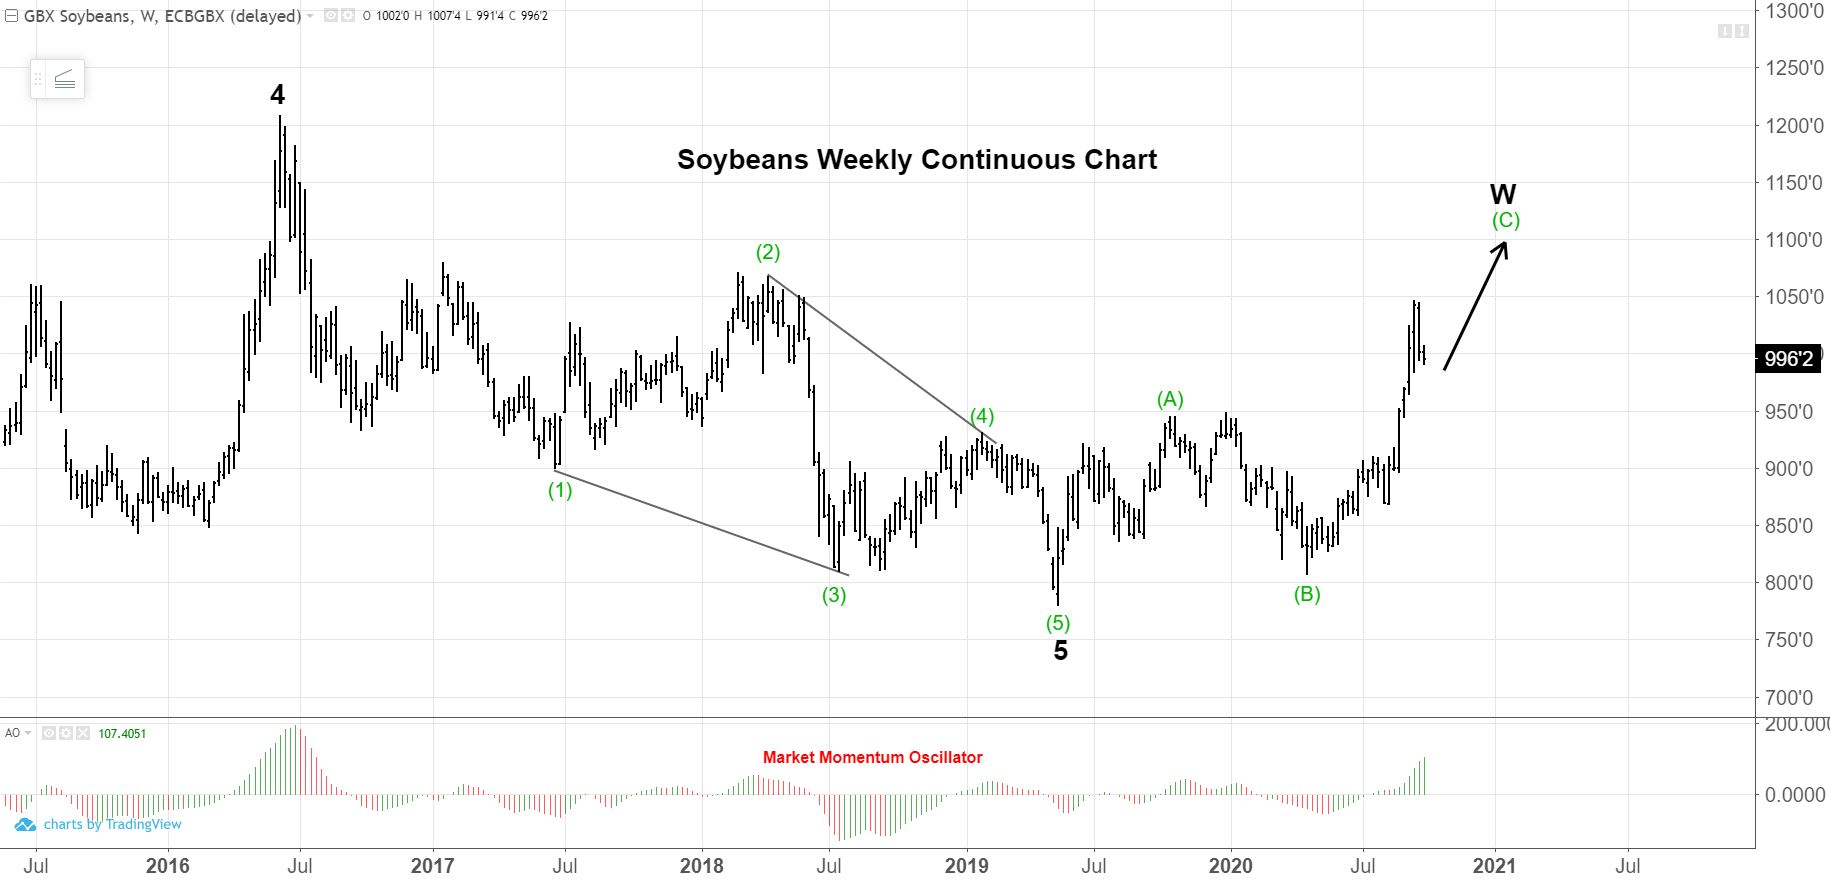 Soybeans weekly continuous chart